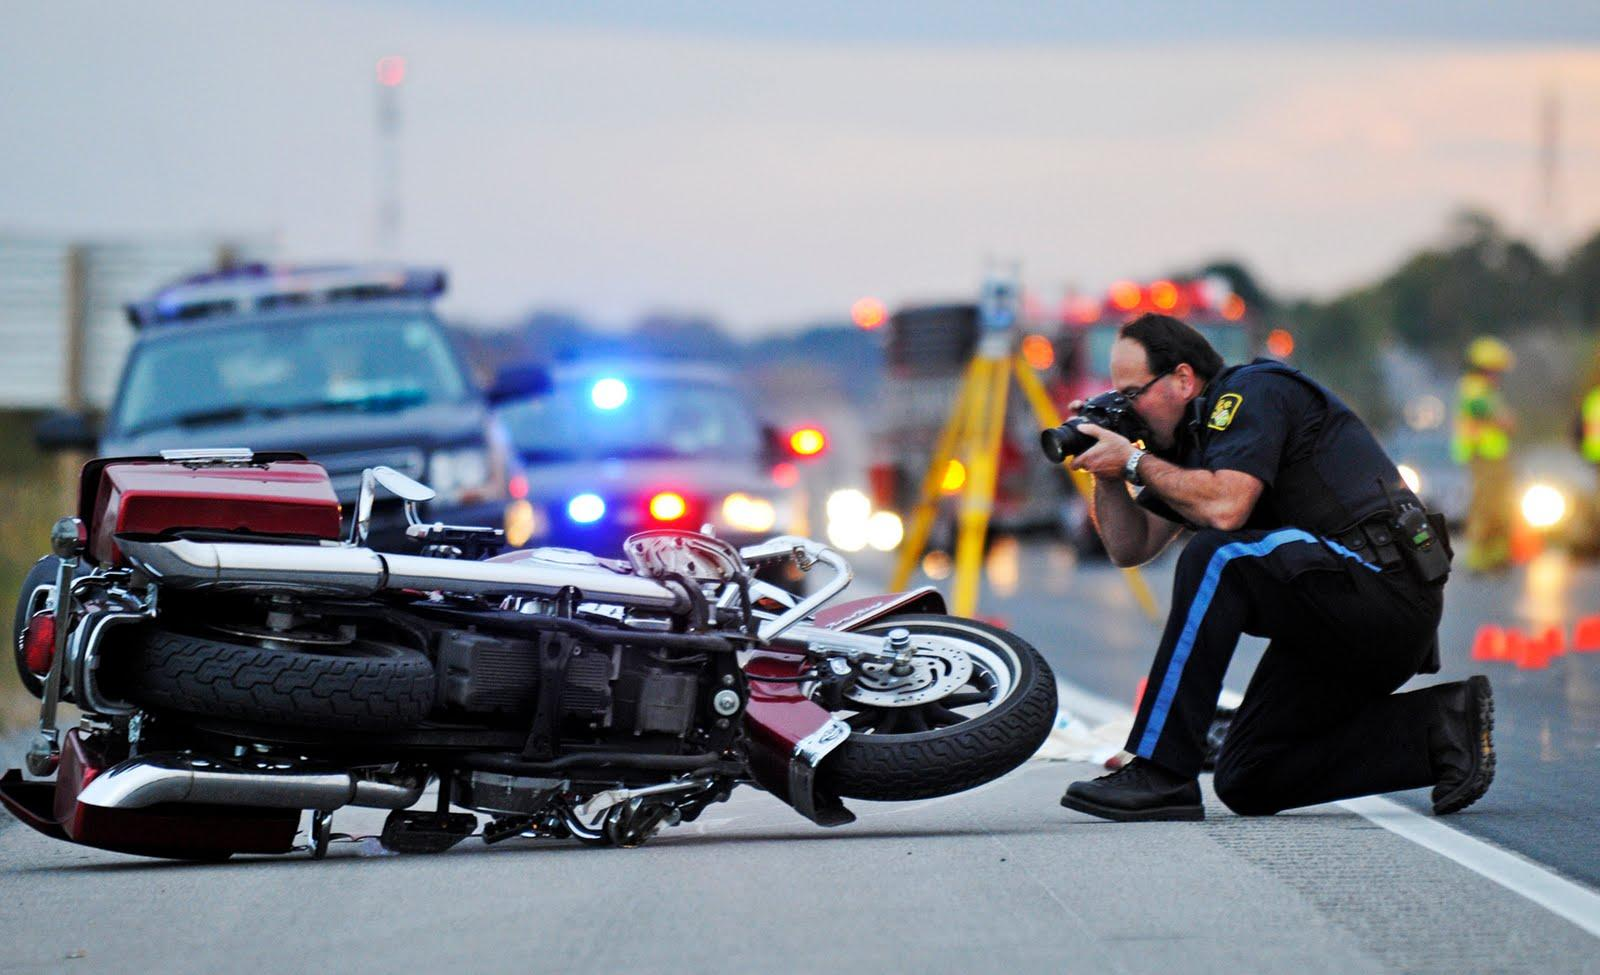 What to do if you come across a motorcycle accident